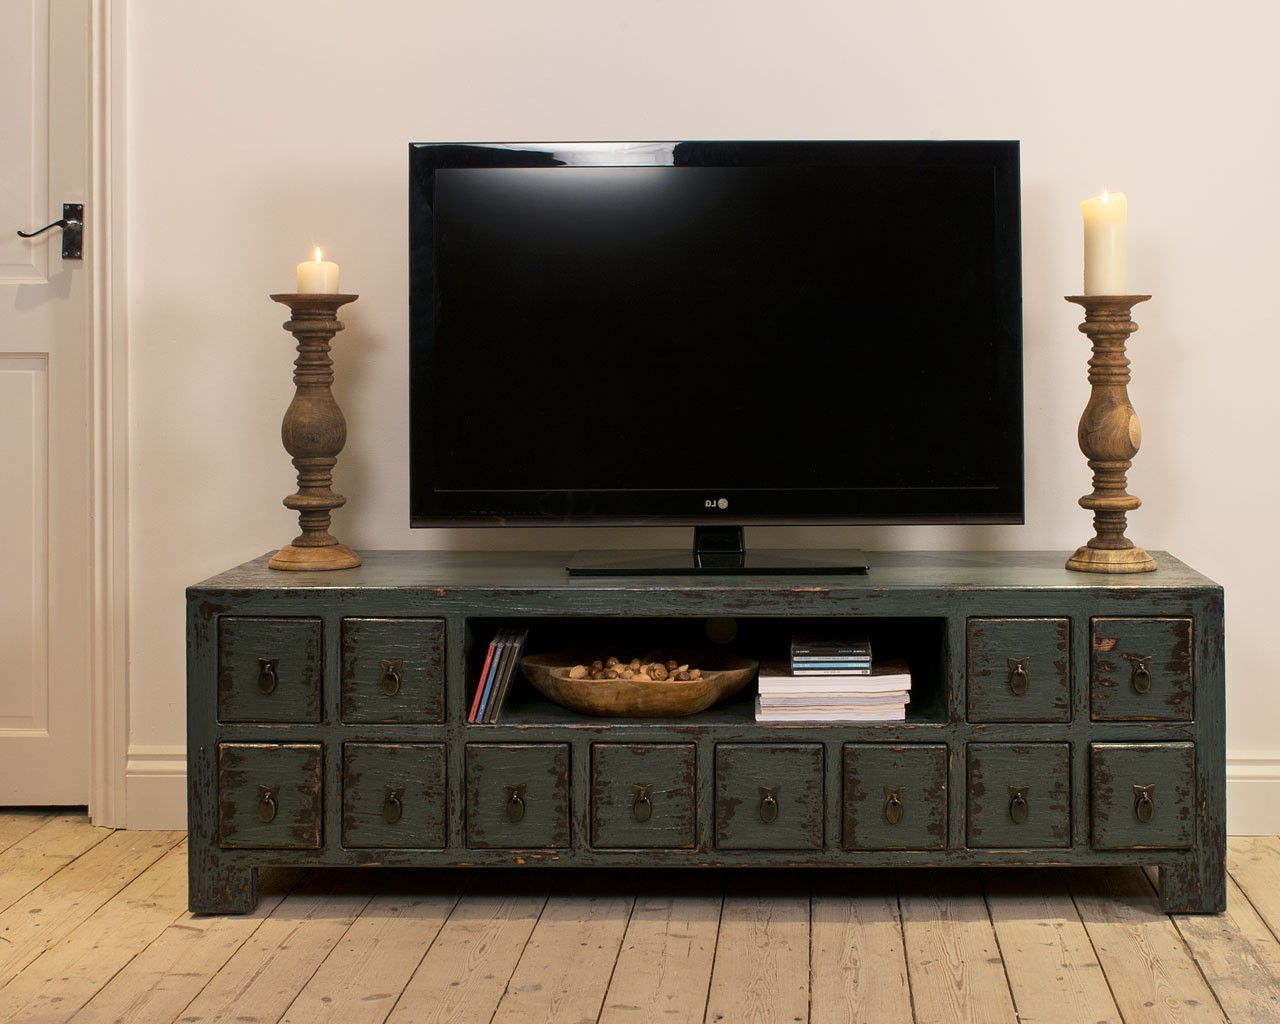 Tukang Mindi Tv Cabinet – Dark Blue Intended For Most Up To Date Dark Wood Tv Cabinets (View 8 of 20)